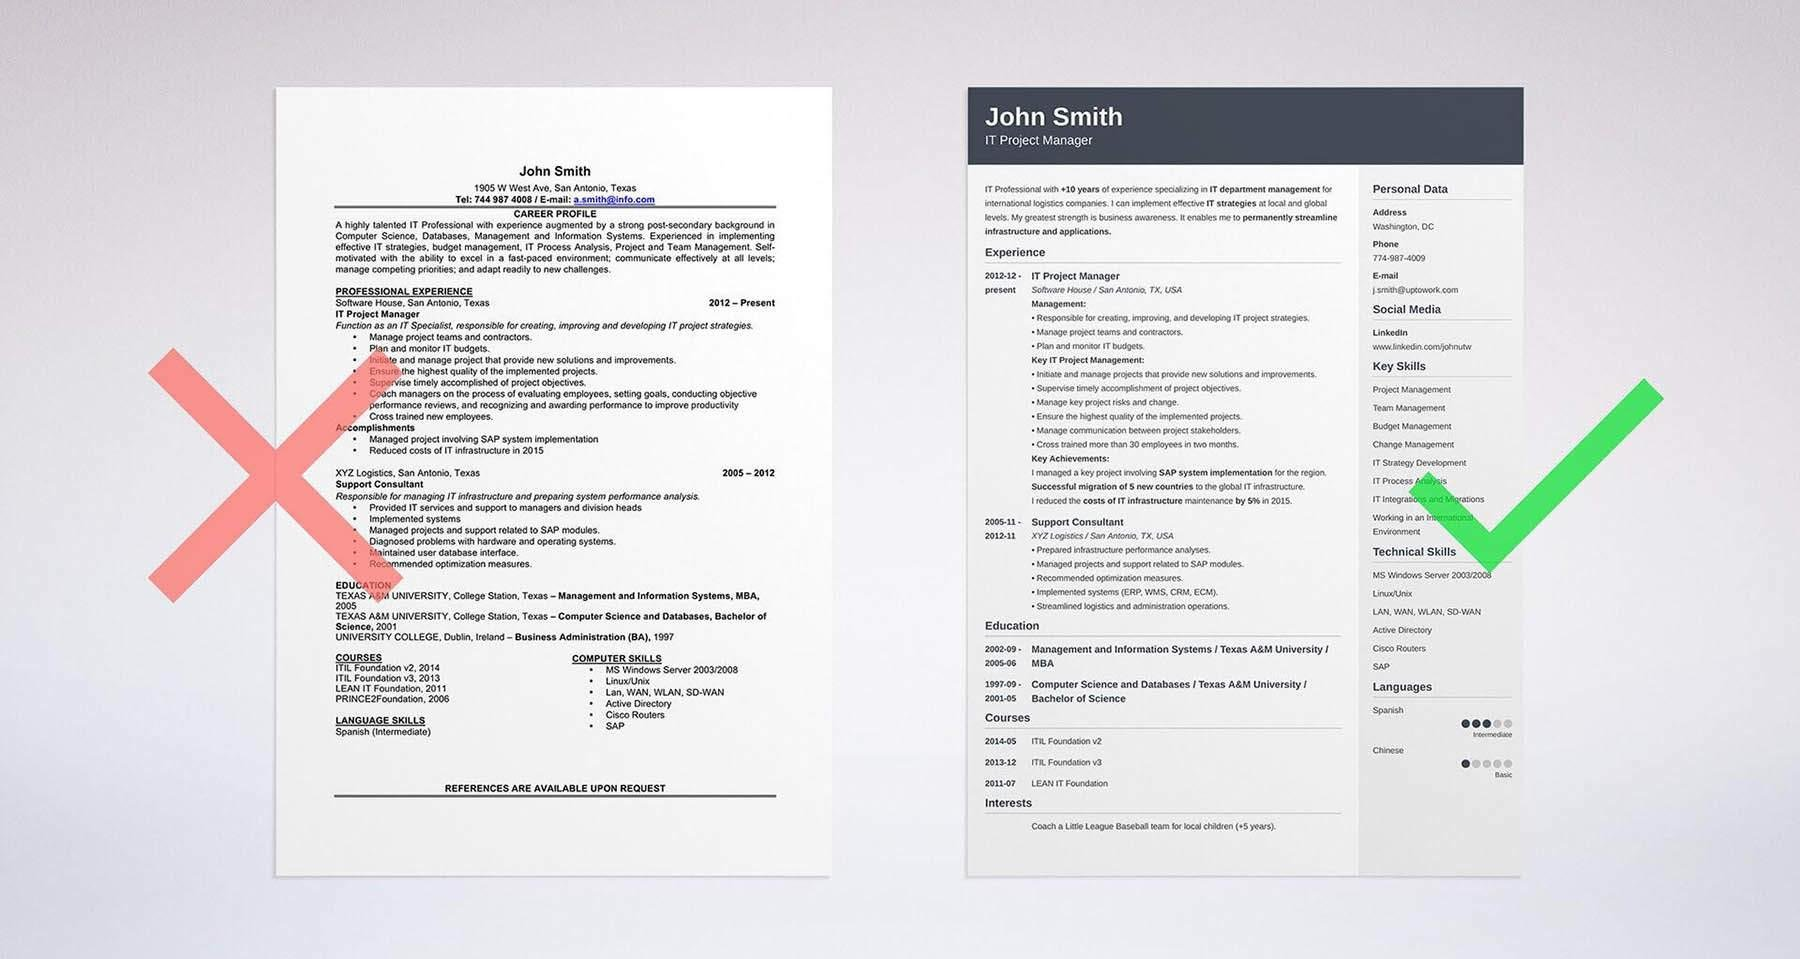 Highlight Your Resume Objective With Our Templates   Create Your Resume In  5 Minutes Here.  Resume Objective Example For Customer Service